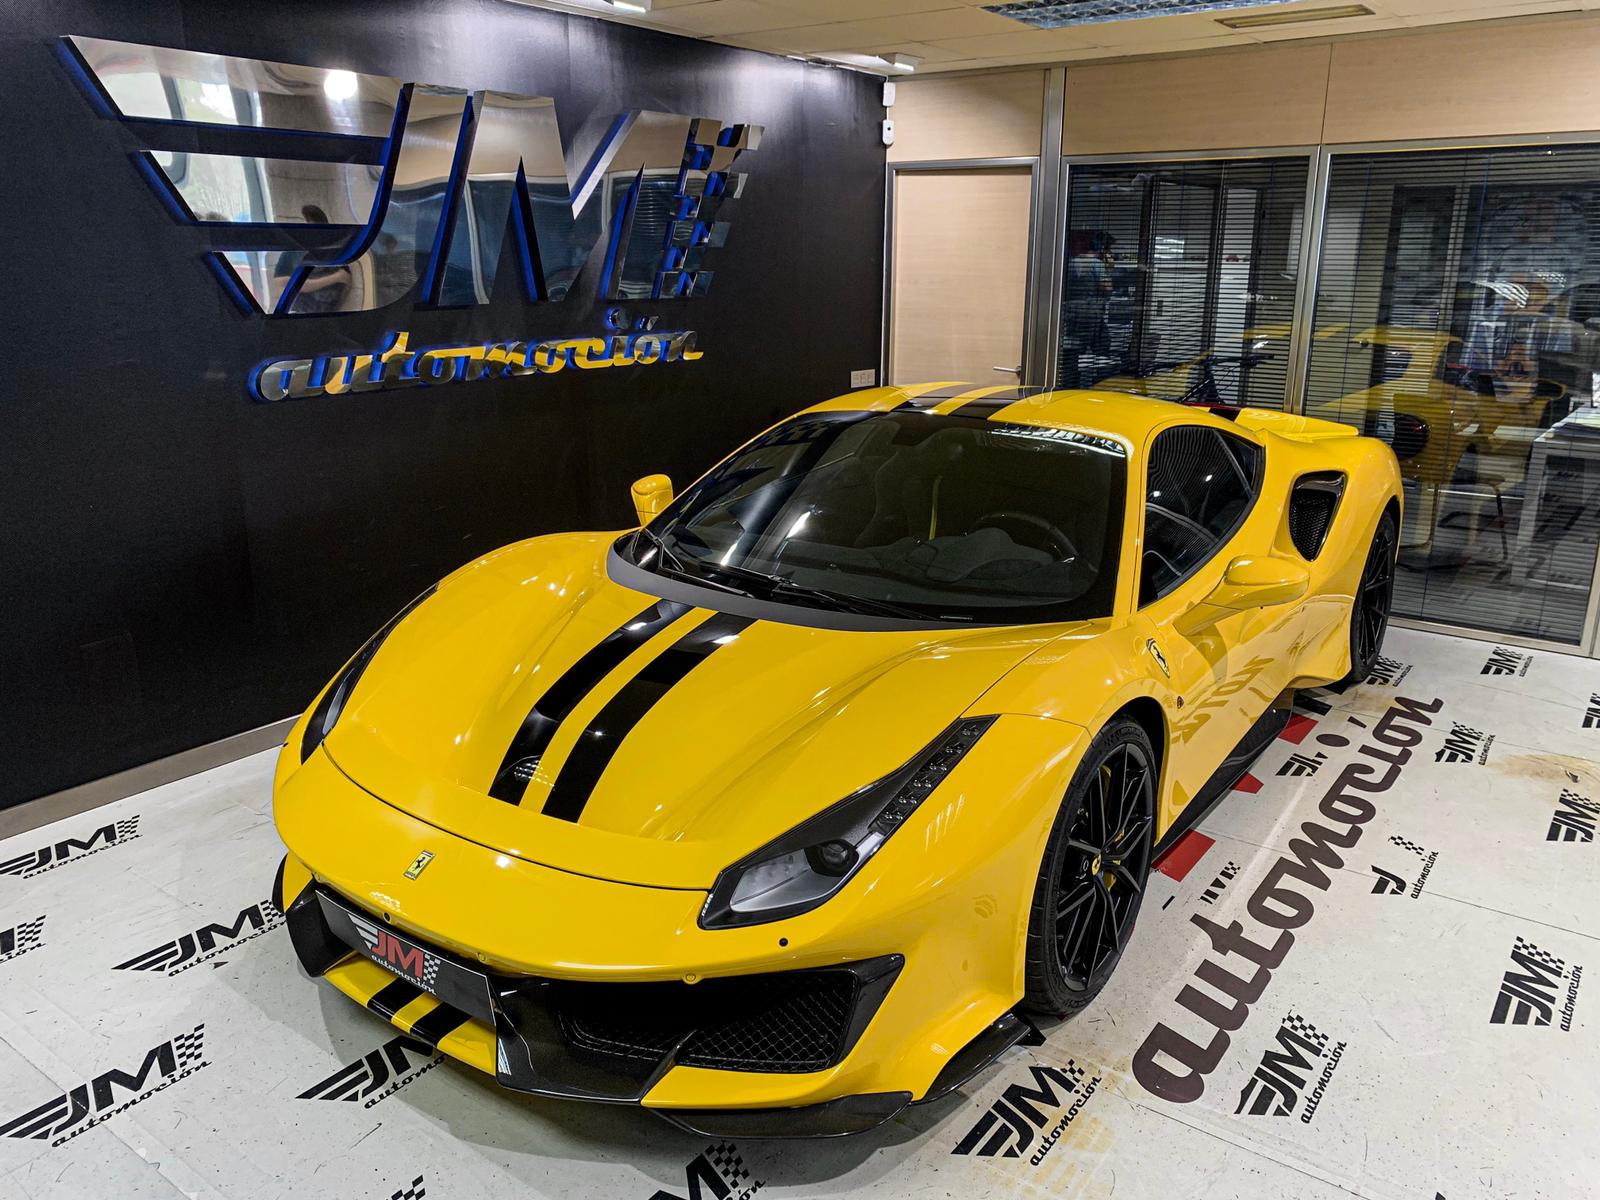 Ferrari 488 Pista--IVA DEDUCIBLE